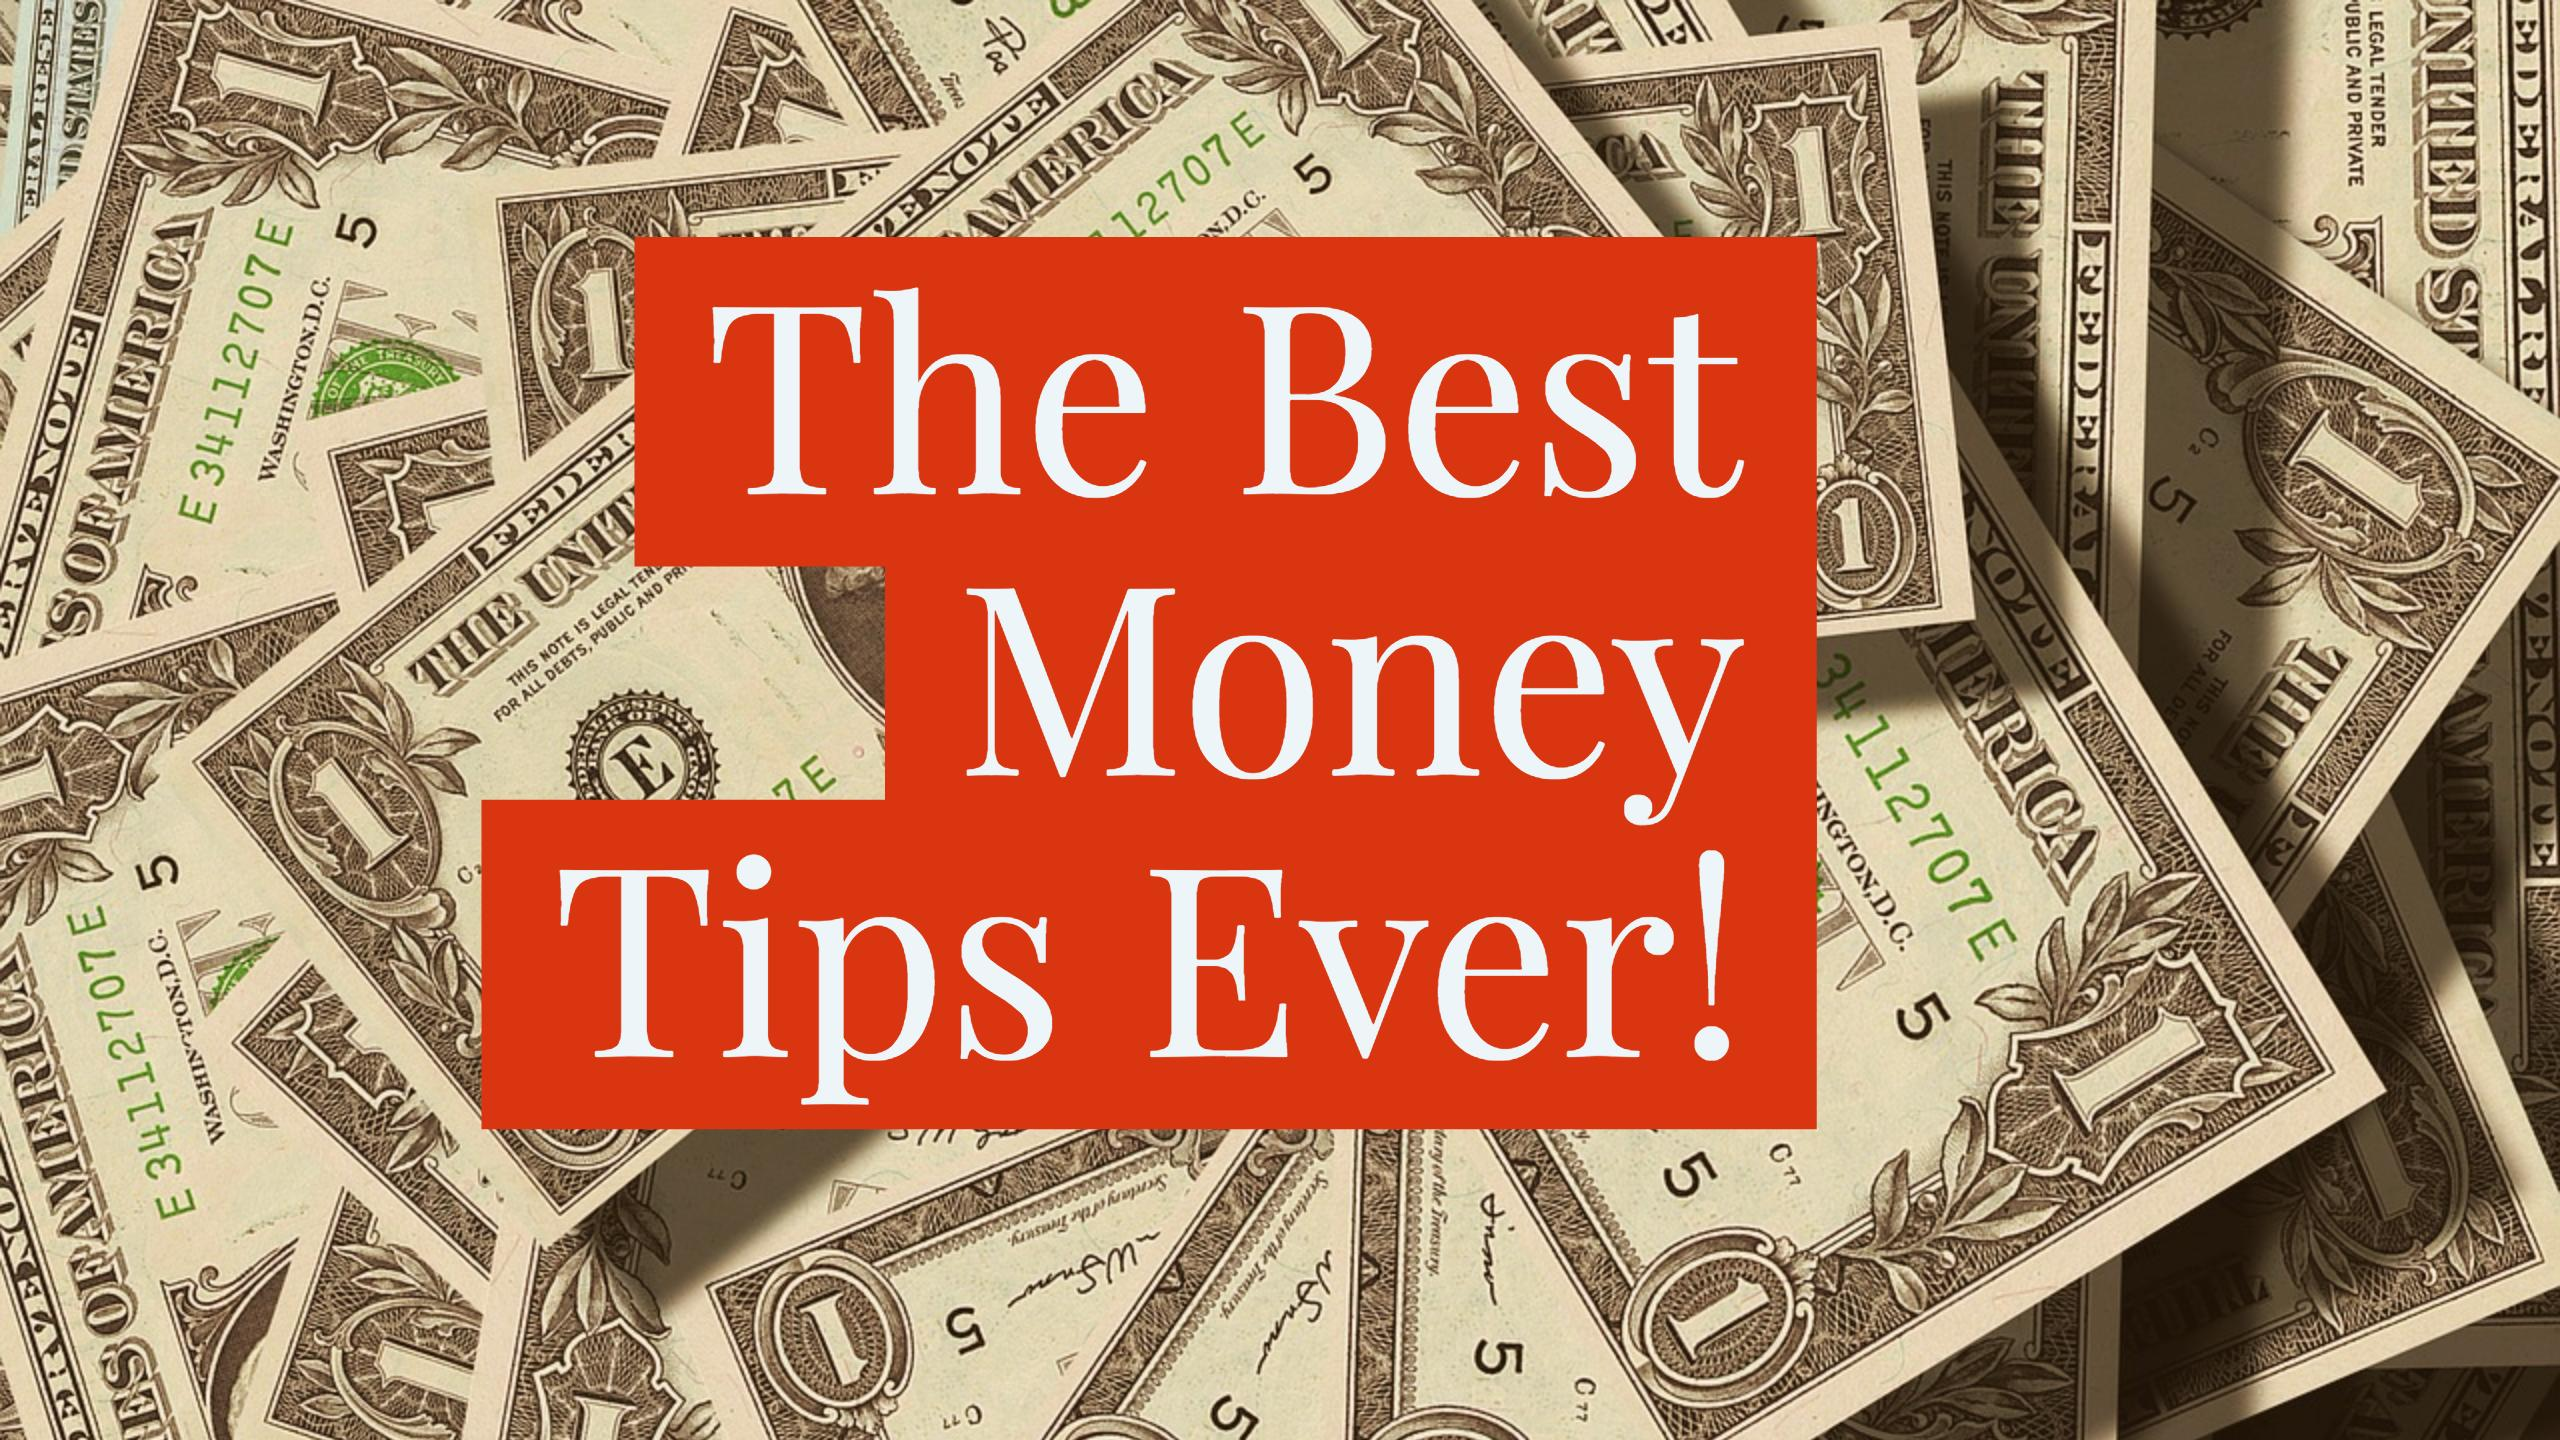 The Best Money Tips Ever